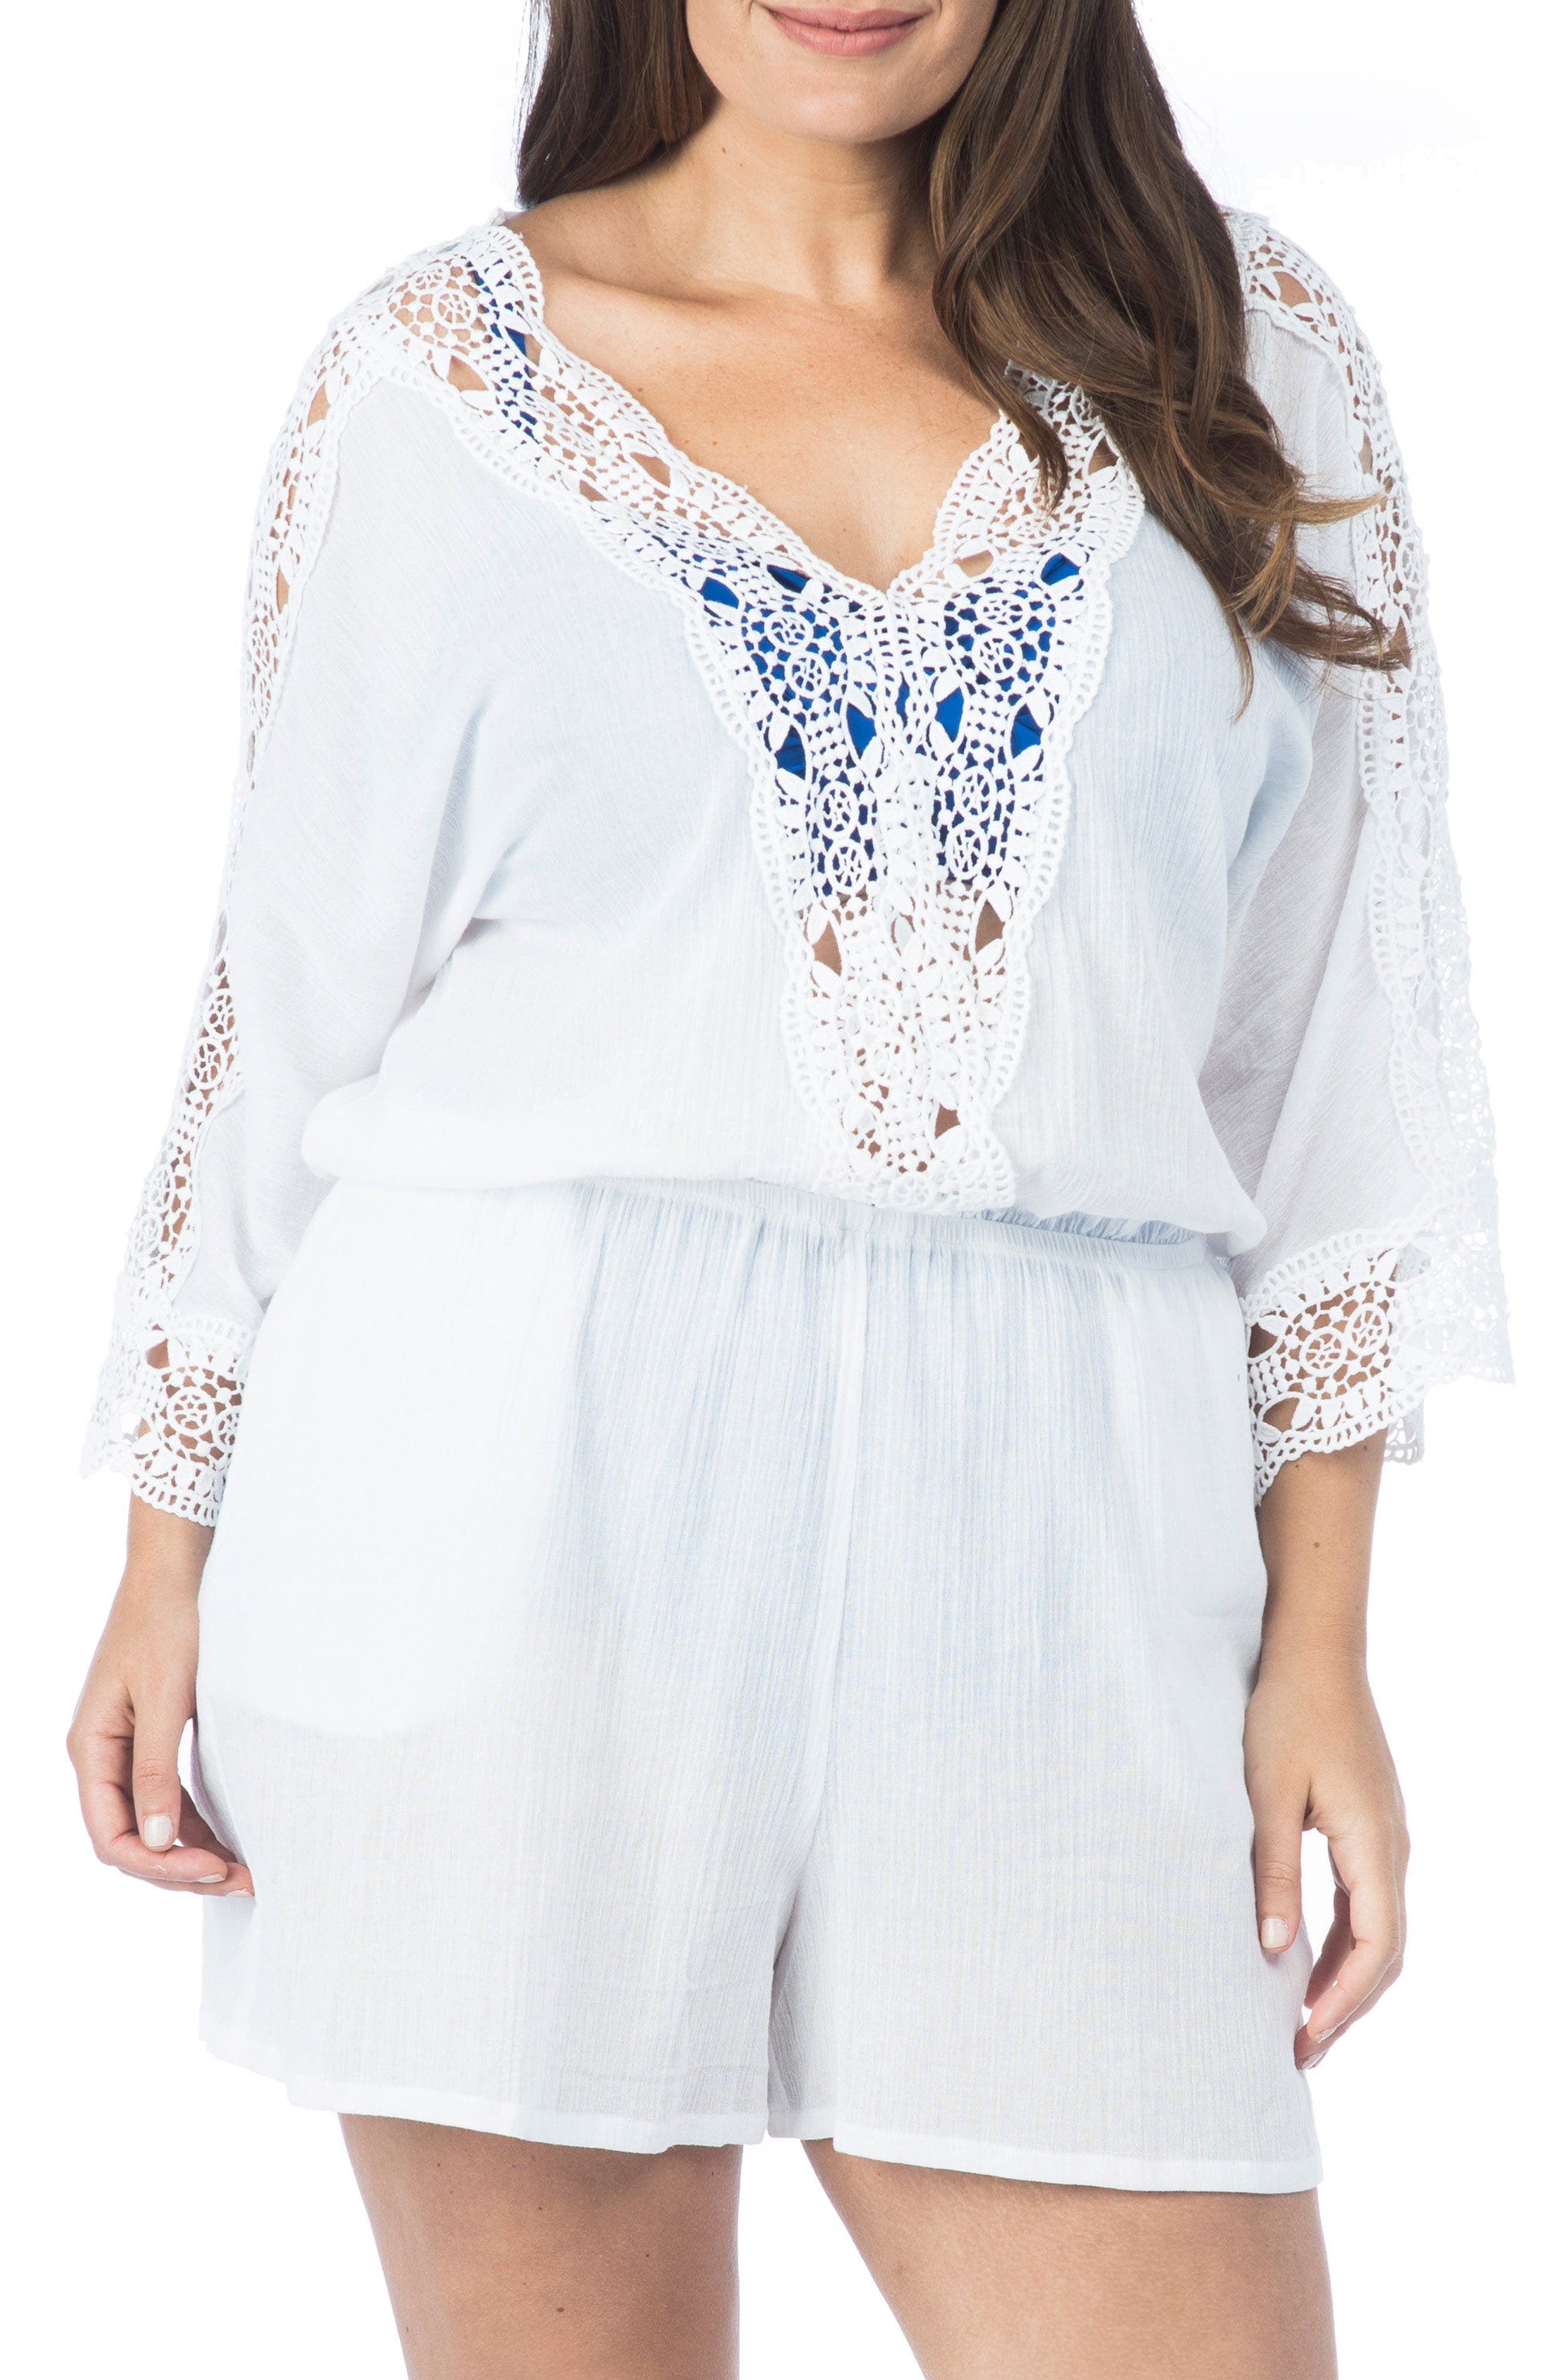 Island Fare Romper,                         Main,                         color, White